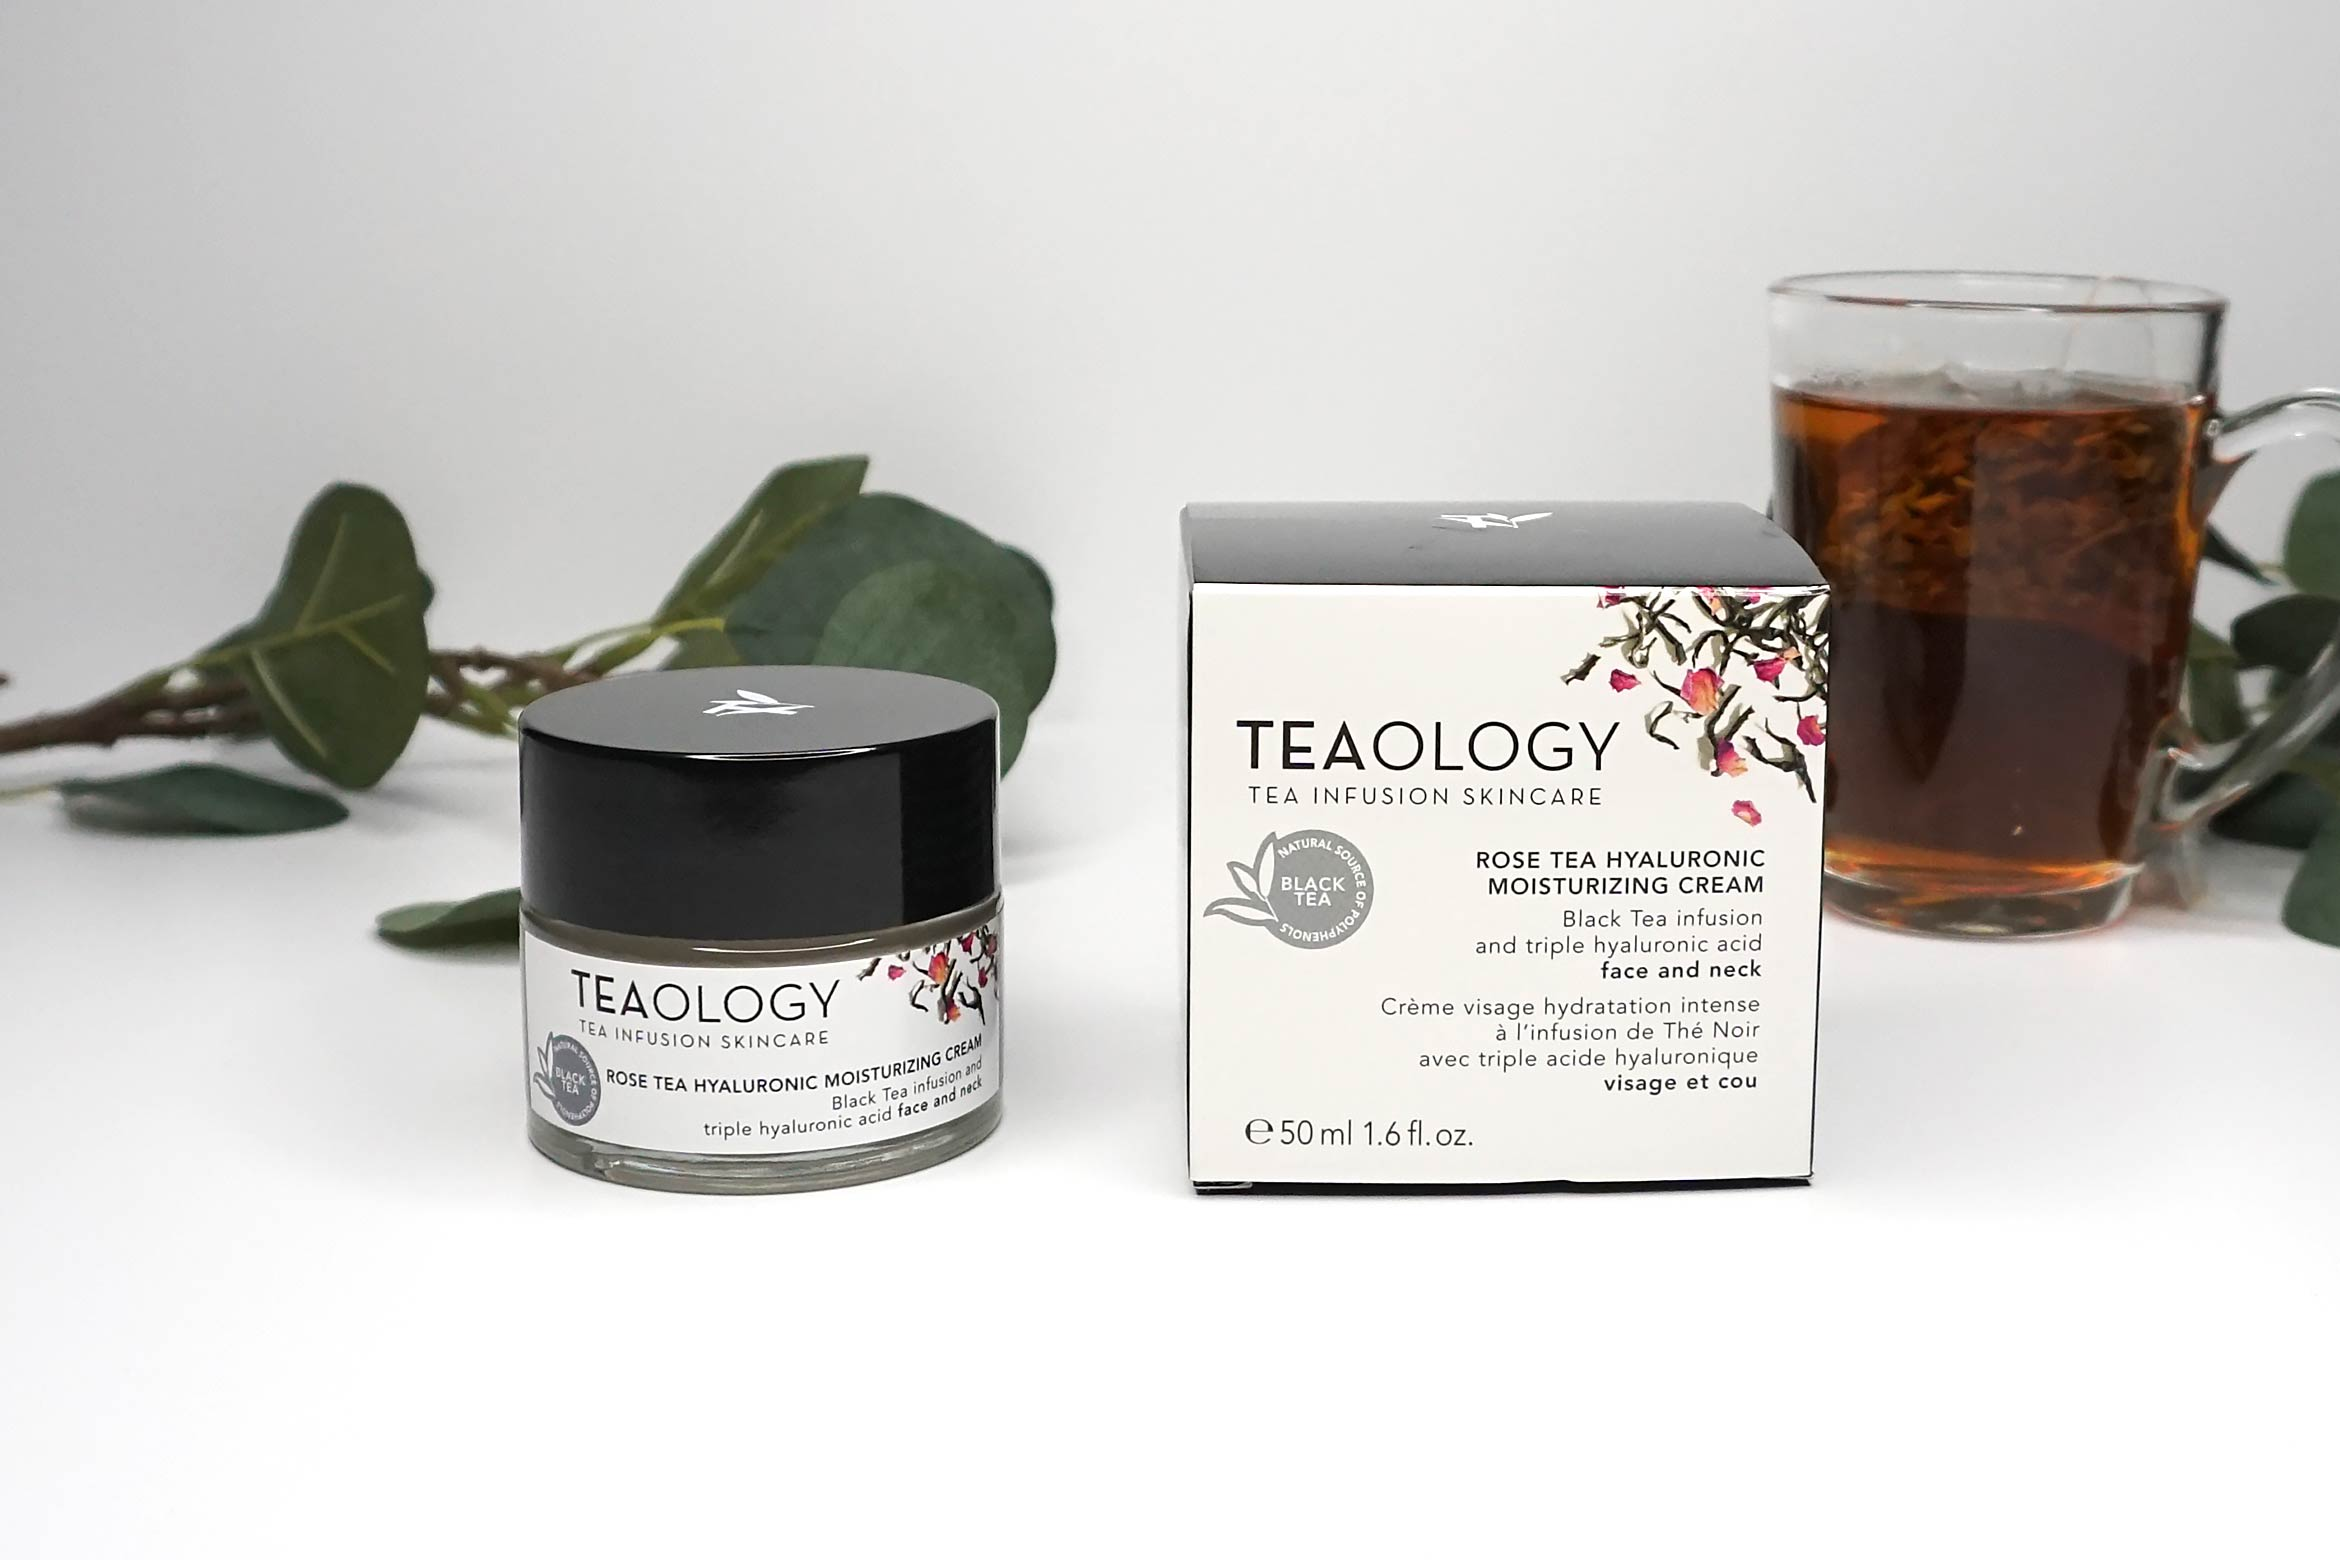 Teaology-Rose-Tea-Hyaluronic-Moisturizing-cream-review